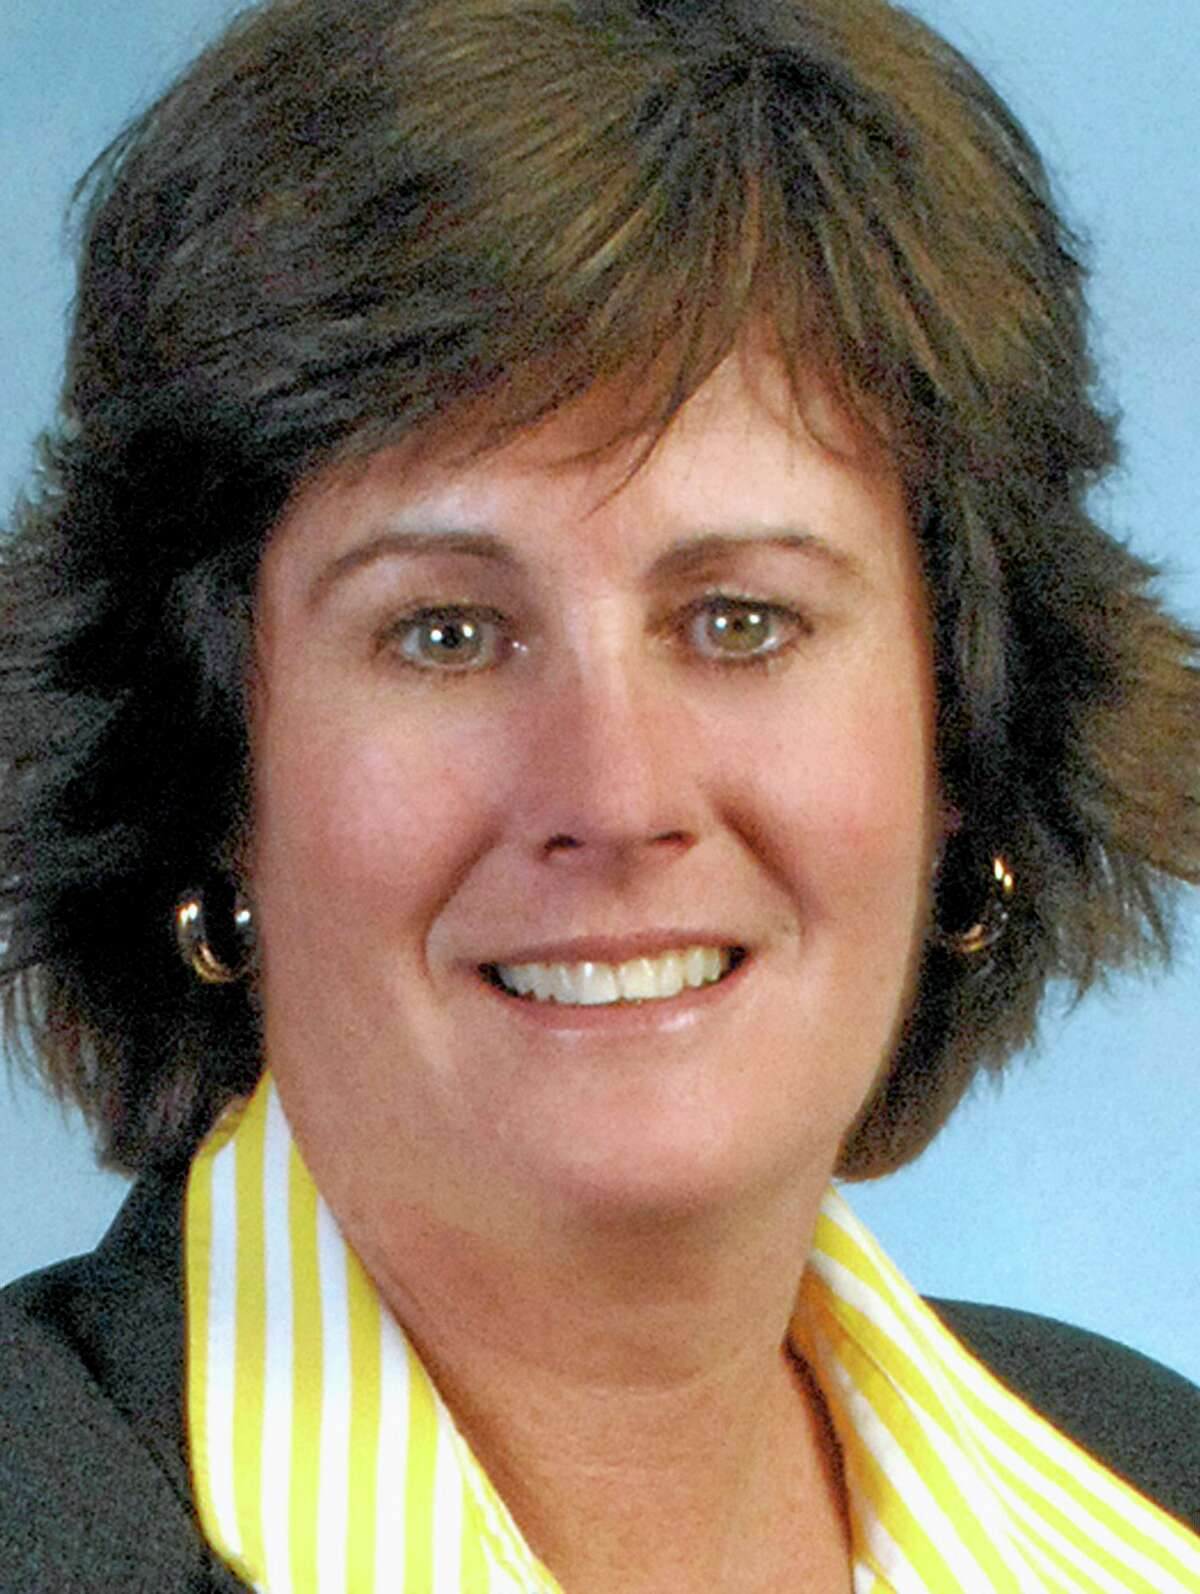 An undated photo released by the Federal Bureau of Investigation shows Patricia M. Ferrick, appointed in September 2013 as special agent in charge of the FBI's New Haven, Conn., Division. In an interview with the The Associated Press Wednesday, Jan. 15, 2014, Ferrick said that investigating public corruption is a top priority for her. (AP Photo/Federal Bureau of Investigation)